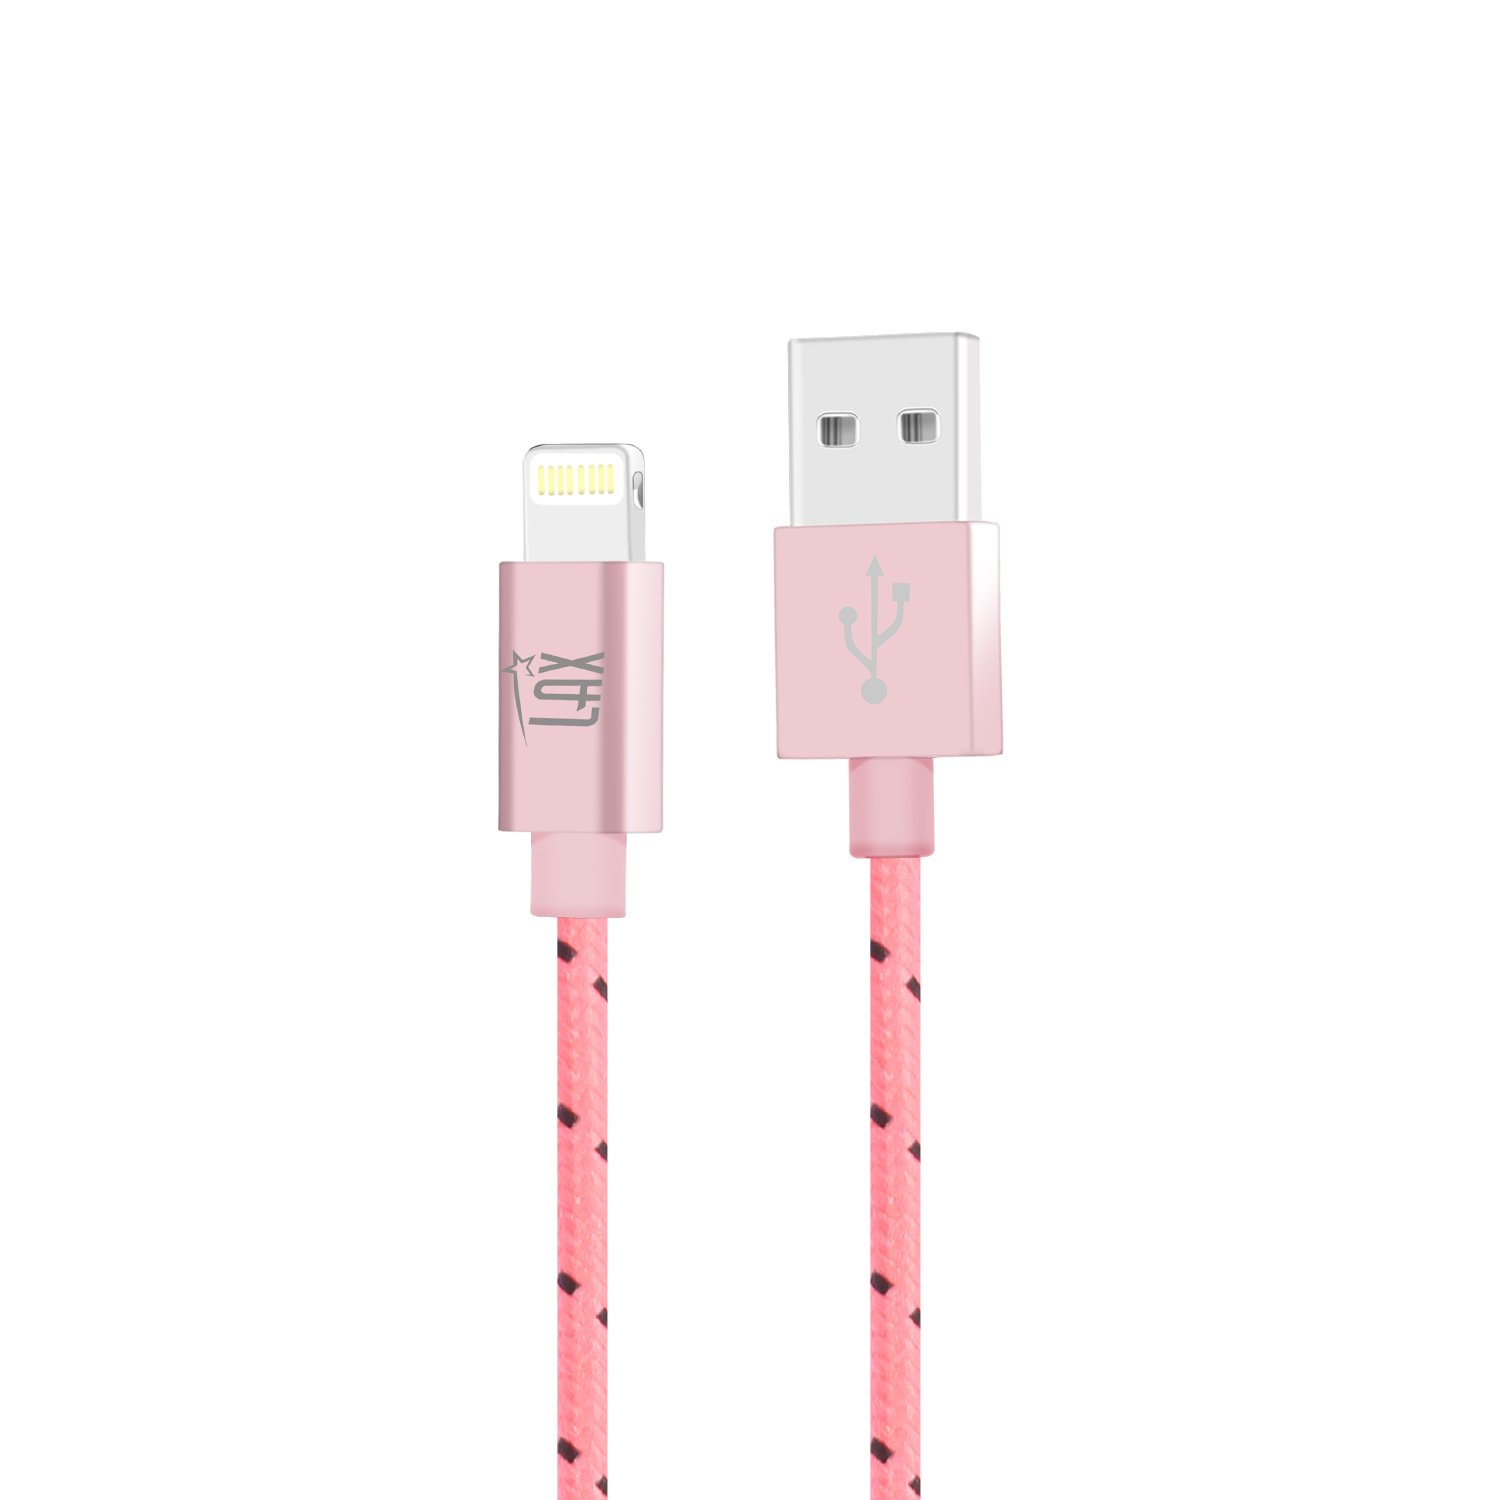 LAX Gadgets Extra Long Apple MFi Certified Nylon Lightning Cable Cord | 6 Ft - Pink by LAX Gadgets (Image #1)